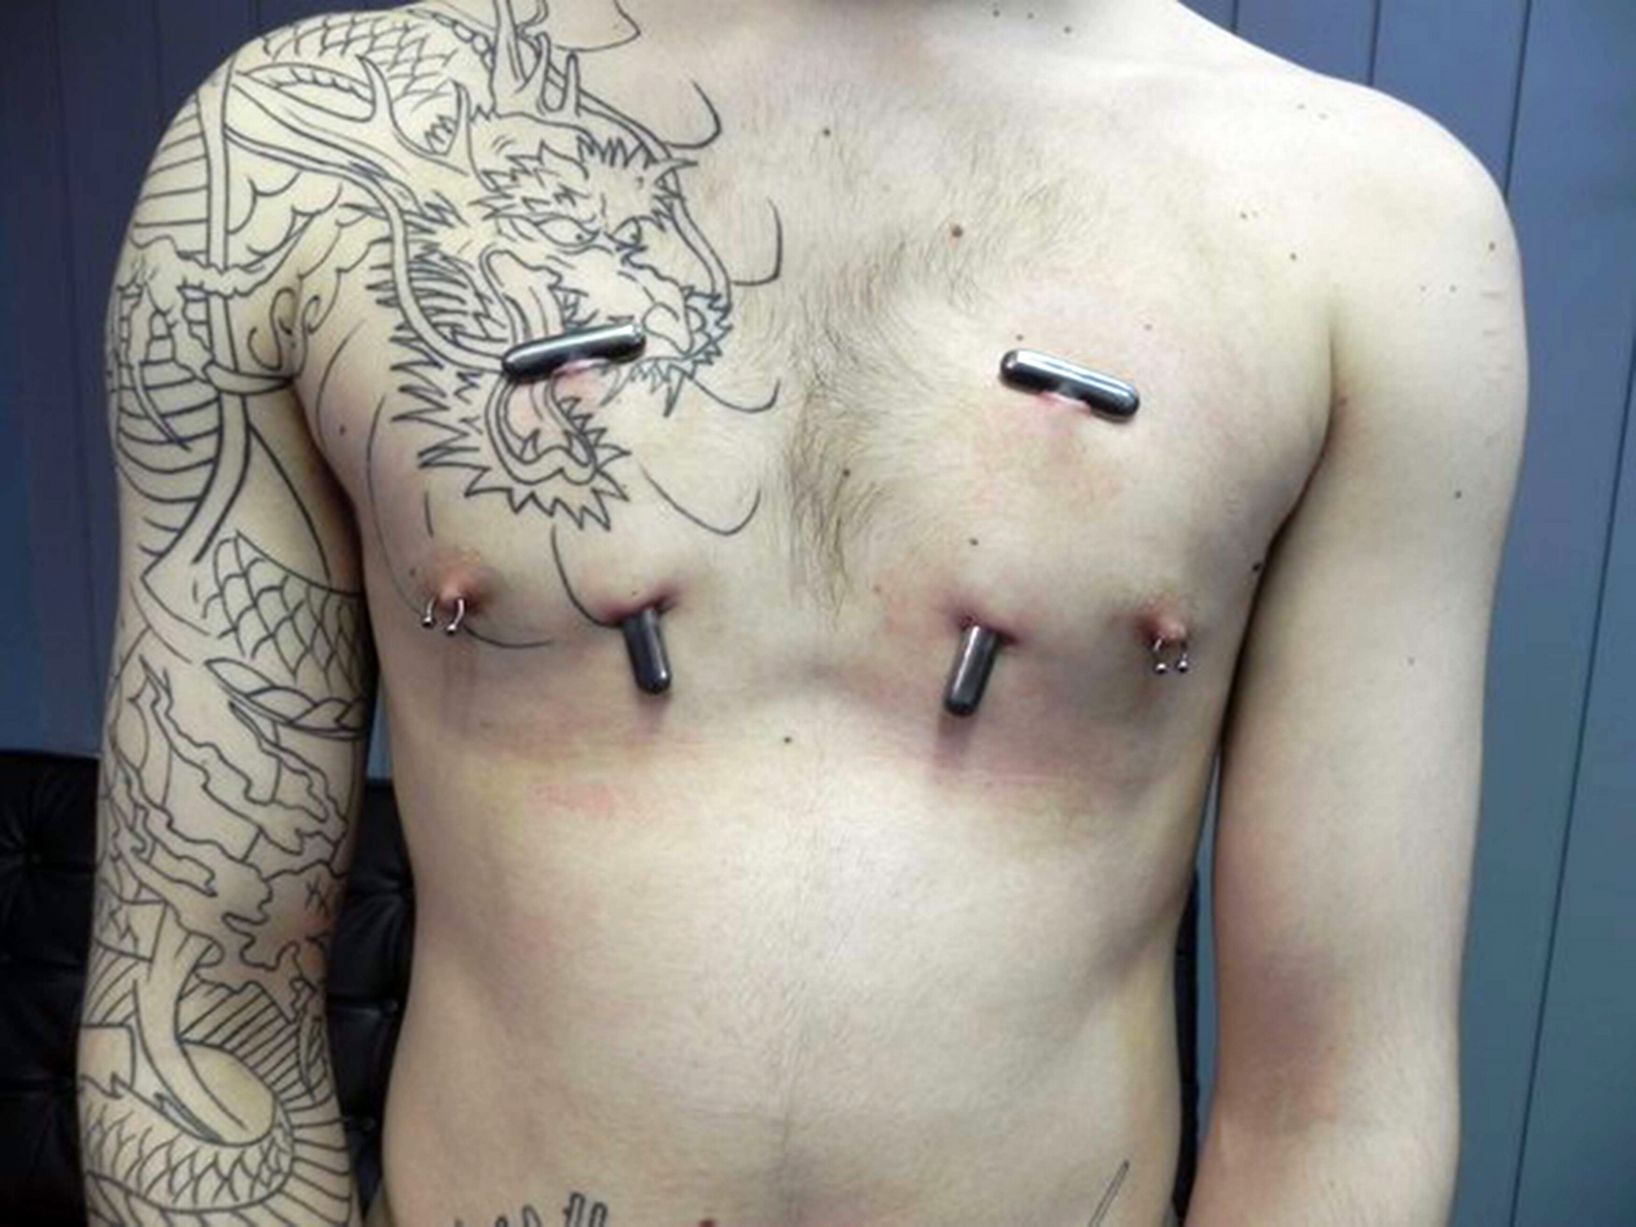 PAY-Extreme-body-art (2)